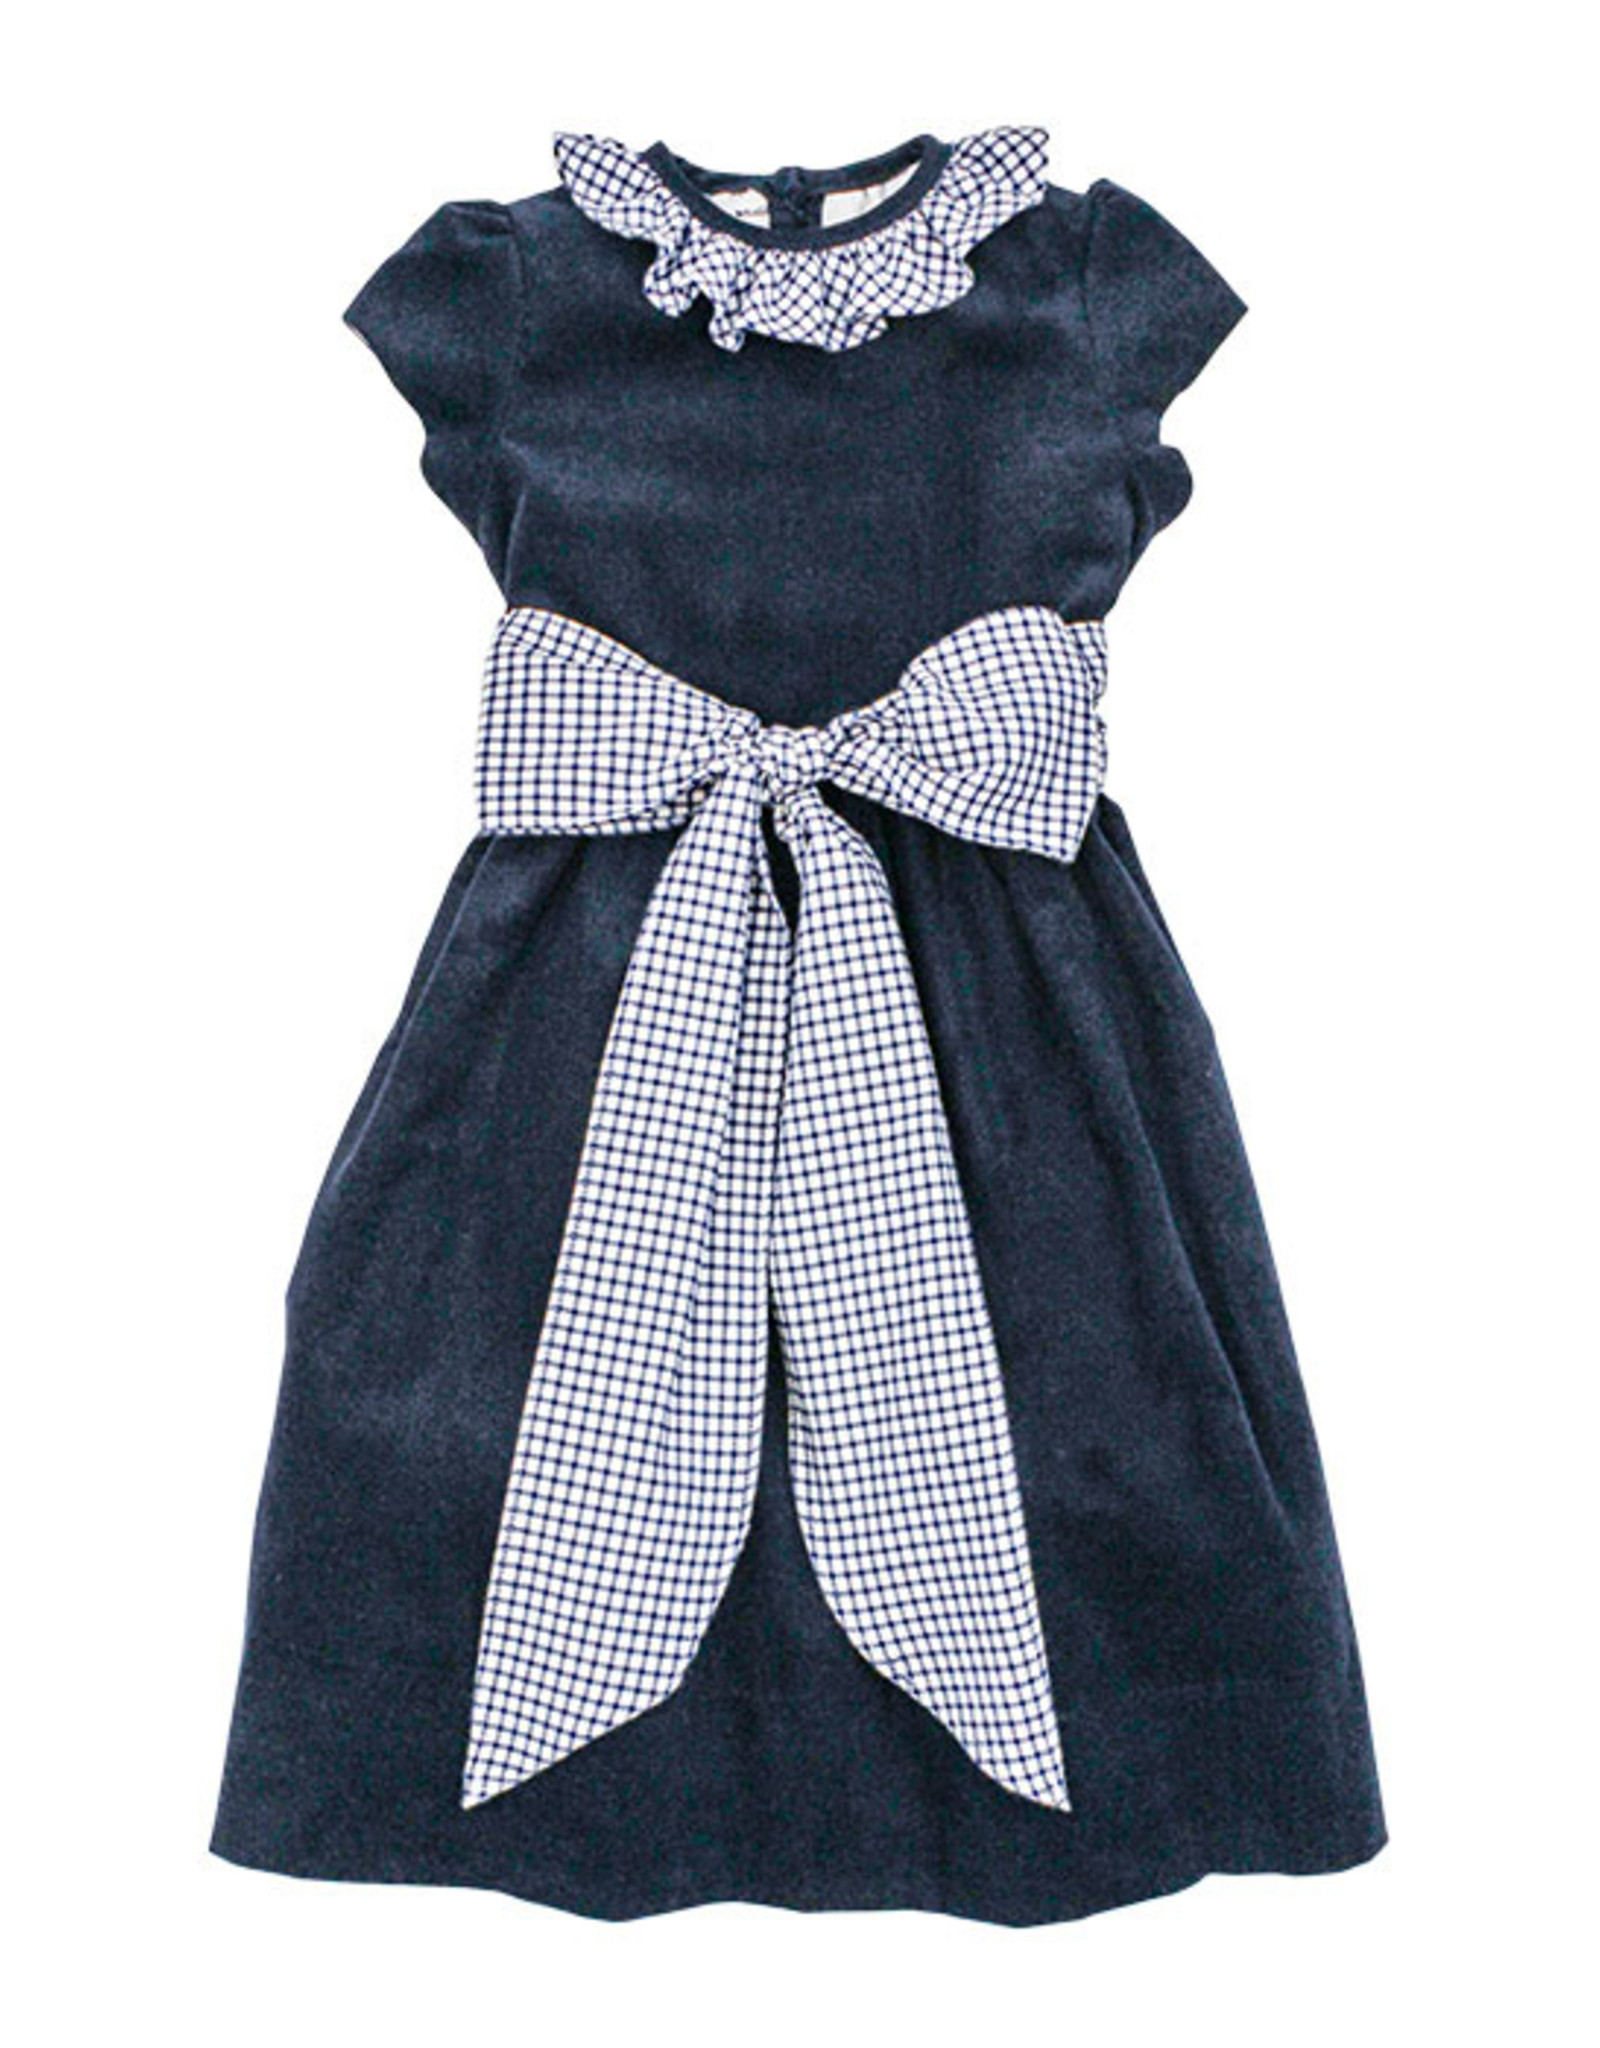 The Bailey Boys Sunday Best Empire Dress